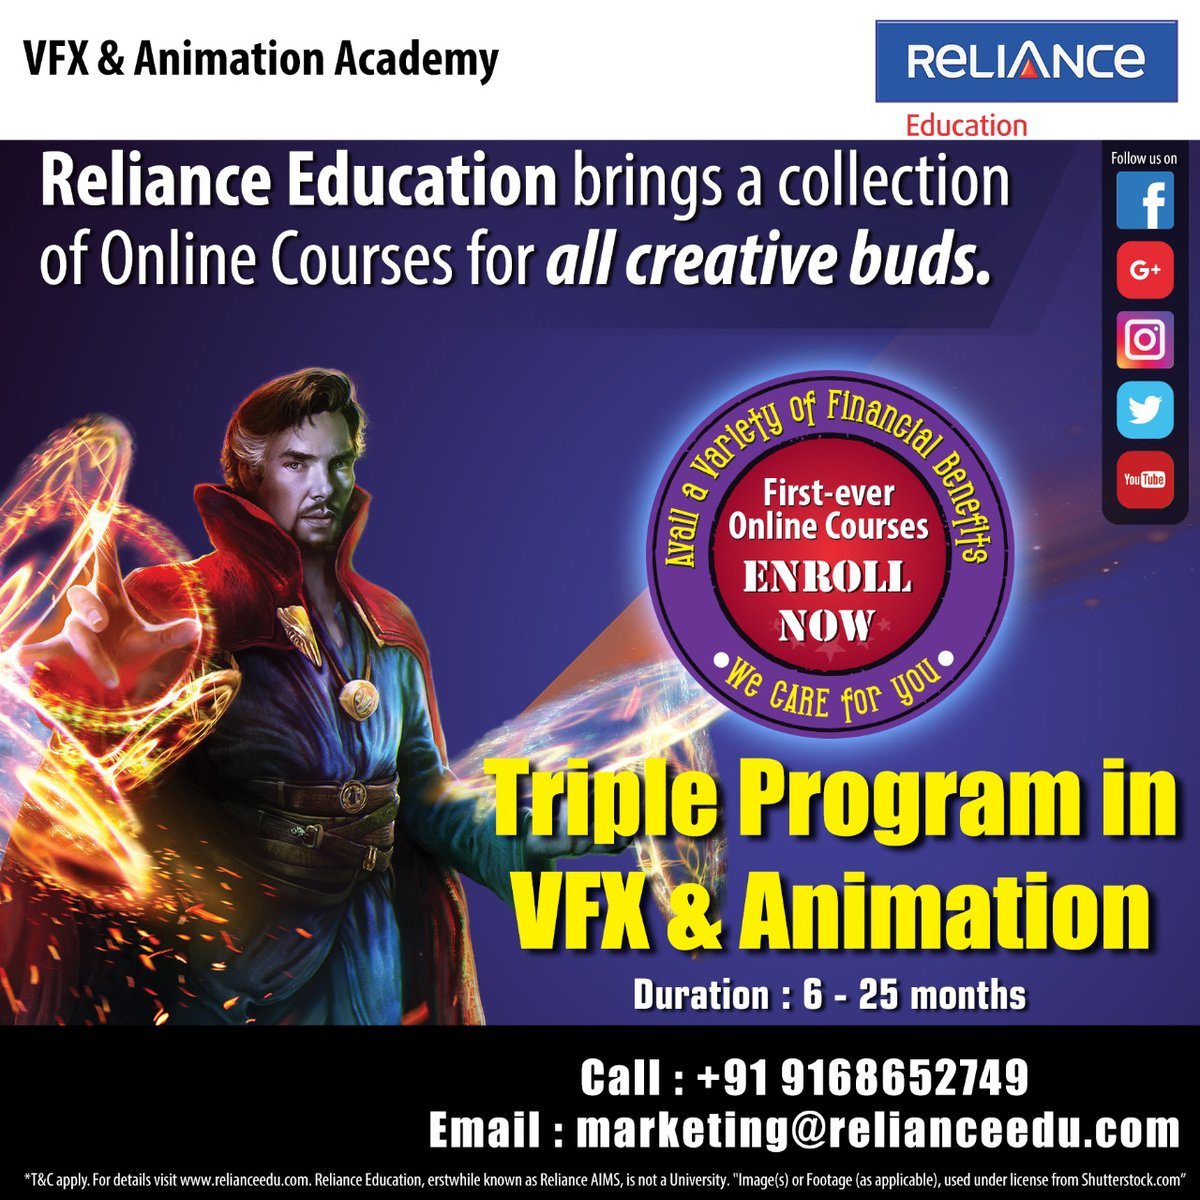 @relianceaims brings a collection of #OnlineCourses for all creative buds! Enroll now for VFX, Animation #OnlinePrograms & avail a variety of financial benefits! 📞9168652749 marketing@relianceedu.com  @RelianceAni @RelianceGames @RelianceEnt @reliancegroup